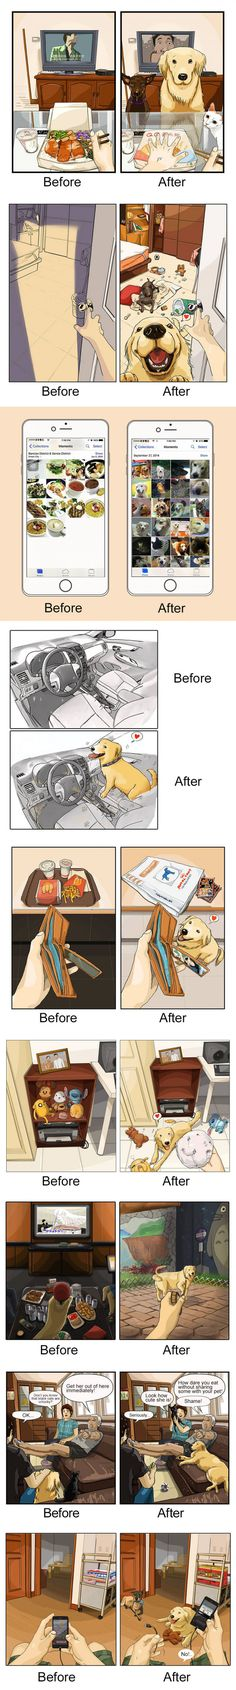 Life Before And After Getting A Dog (by maimaijohn)